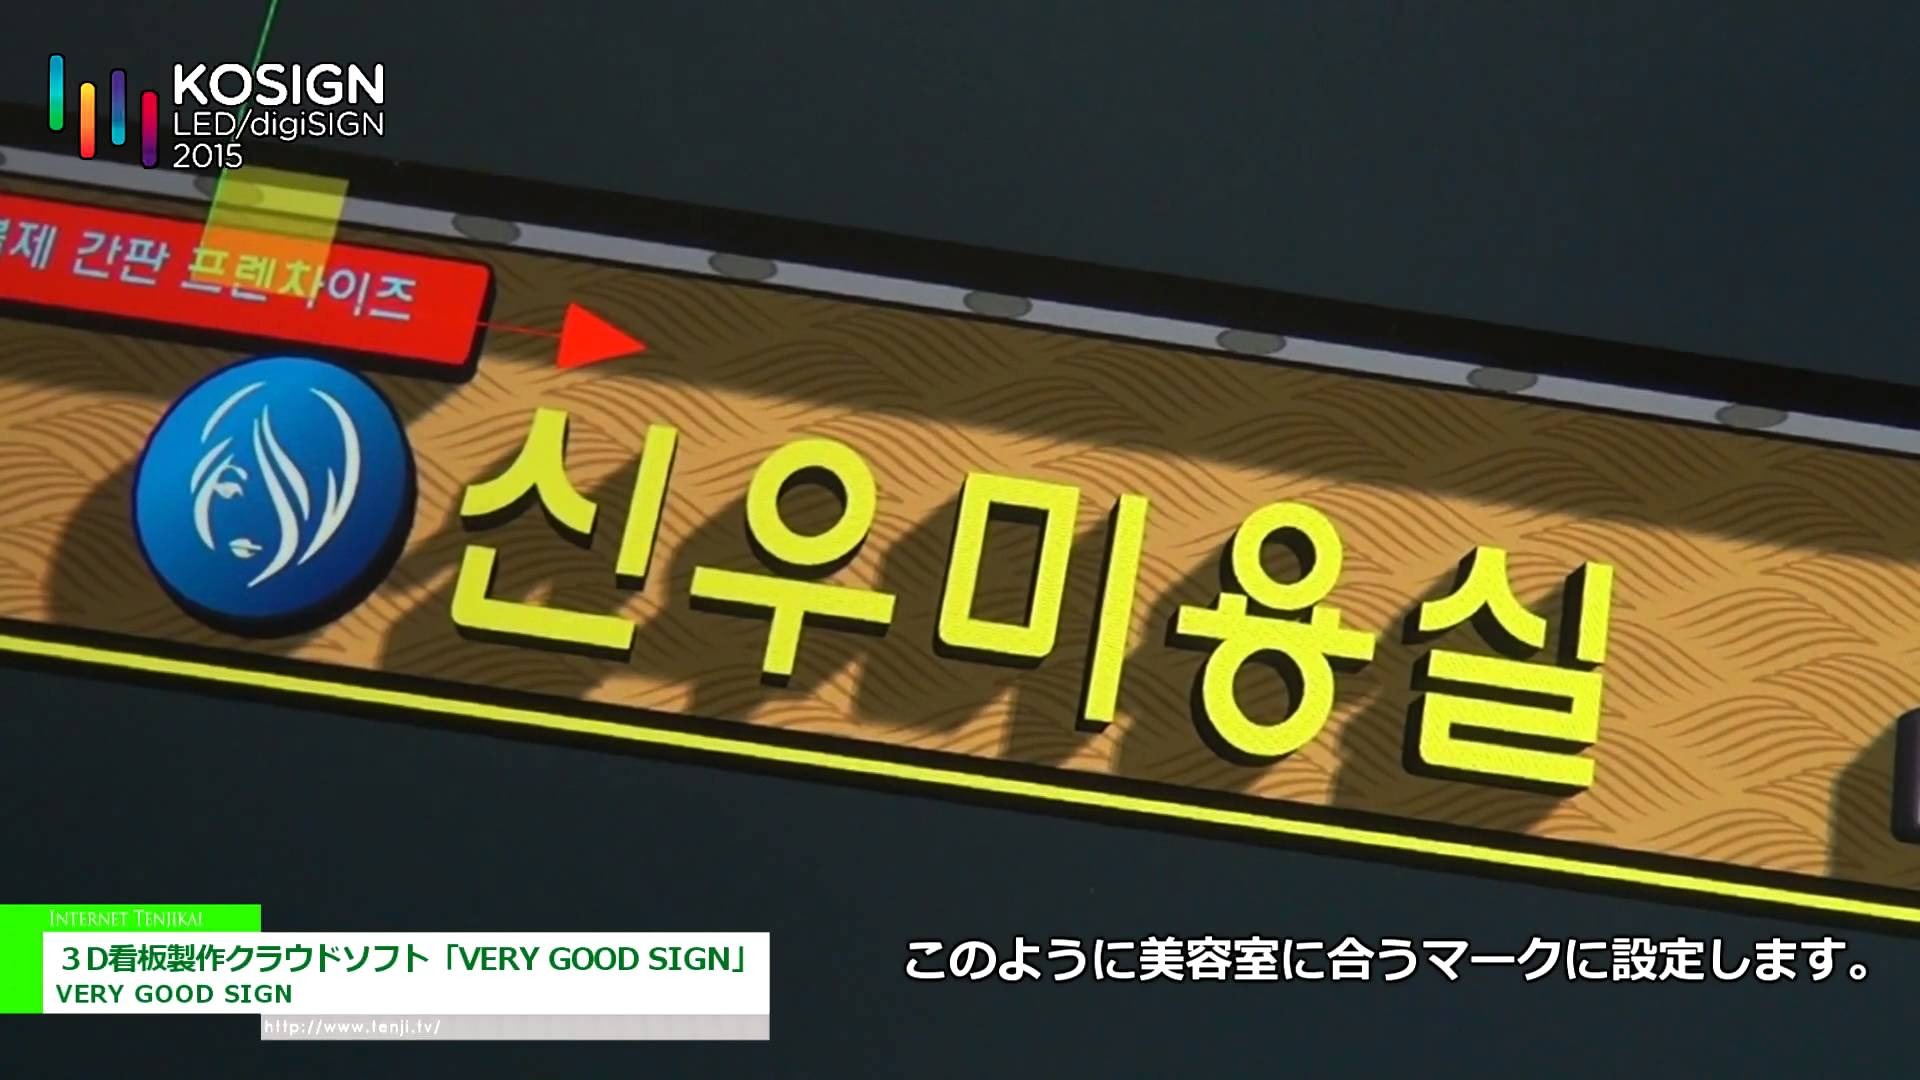 [KOSIGN 2015] 3D看板製作クラウドソフト「VERY GOOD SIGN」 – VERY GOOD SIGN